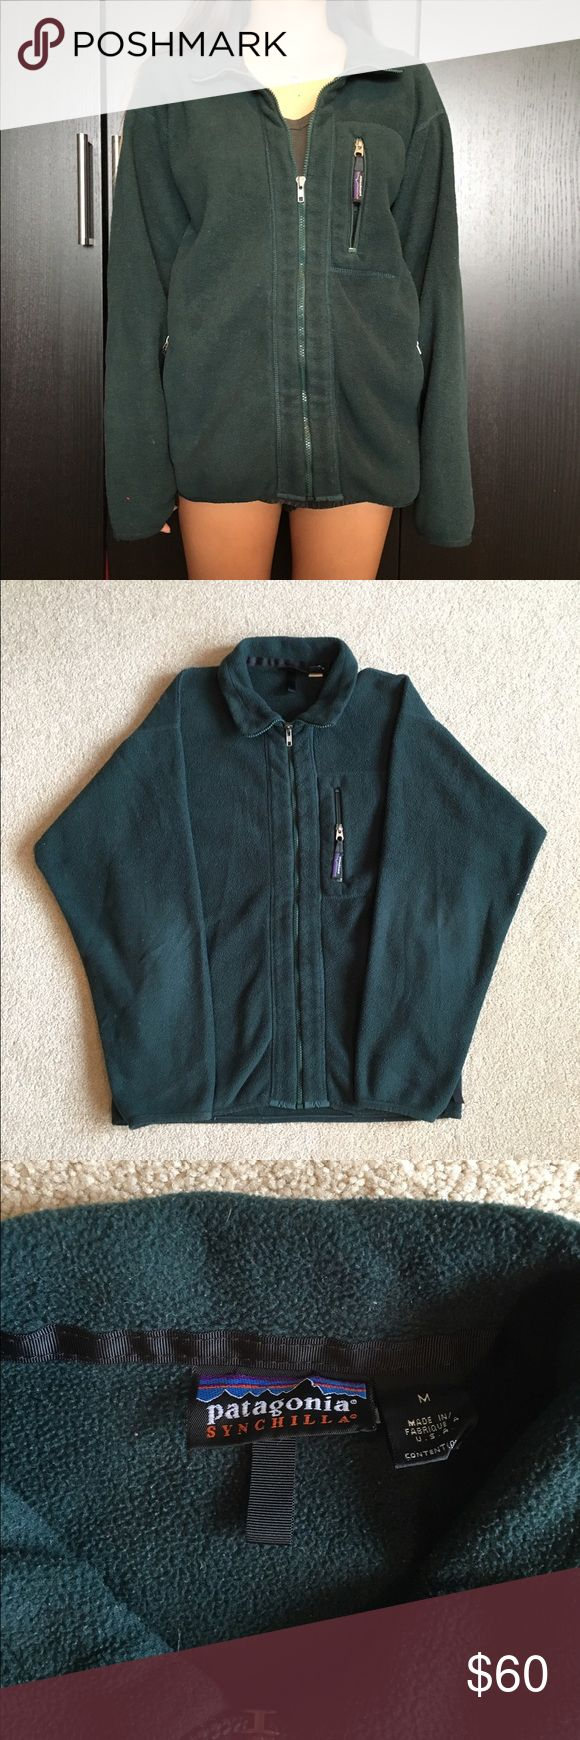 """Patagonia Synchilla Jacket. (M) Patagonia Synchilla Jacket. Size Medium. Model is 5'0 for reference. Overall great condition. Measurements. Chest: 21"""" Collar Down: 22"""" Patagonia Sweaters Zip Up"""